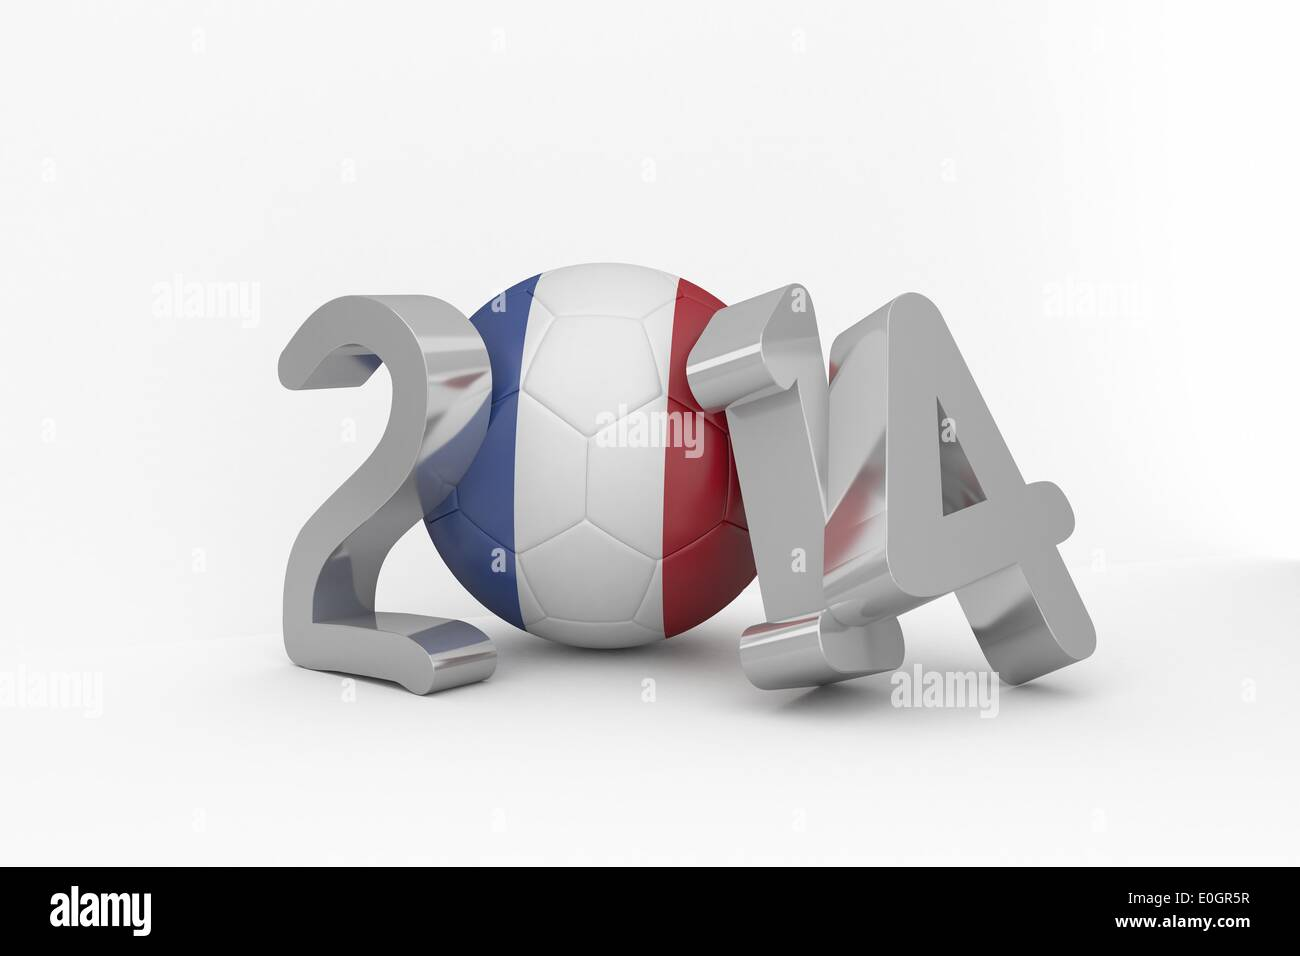 France world cup 2014 - Stock Image